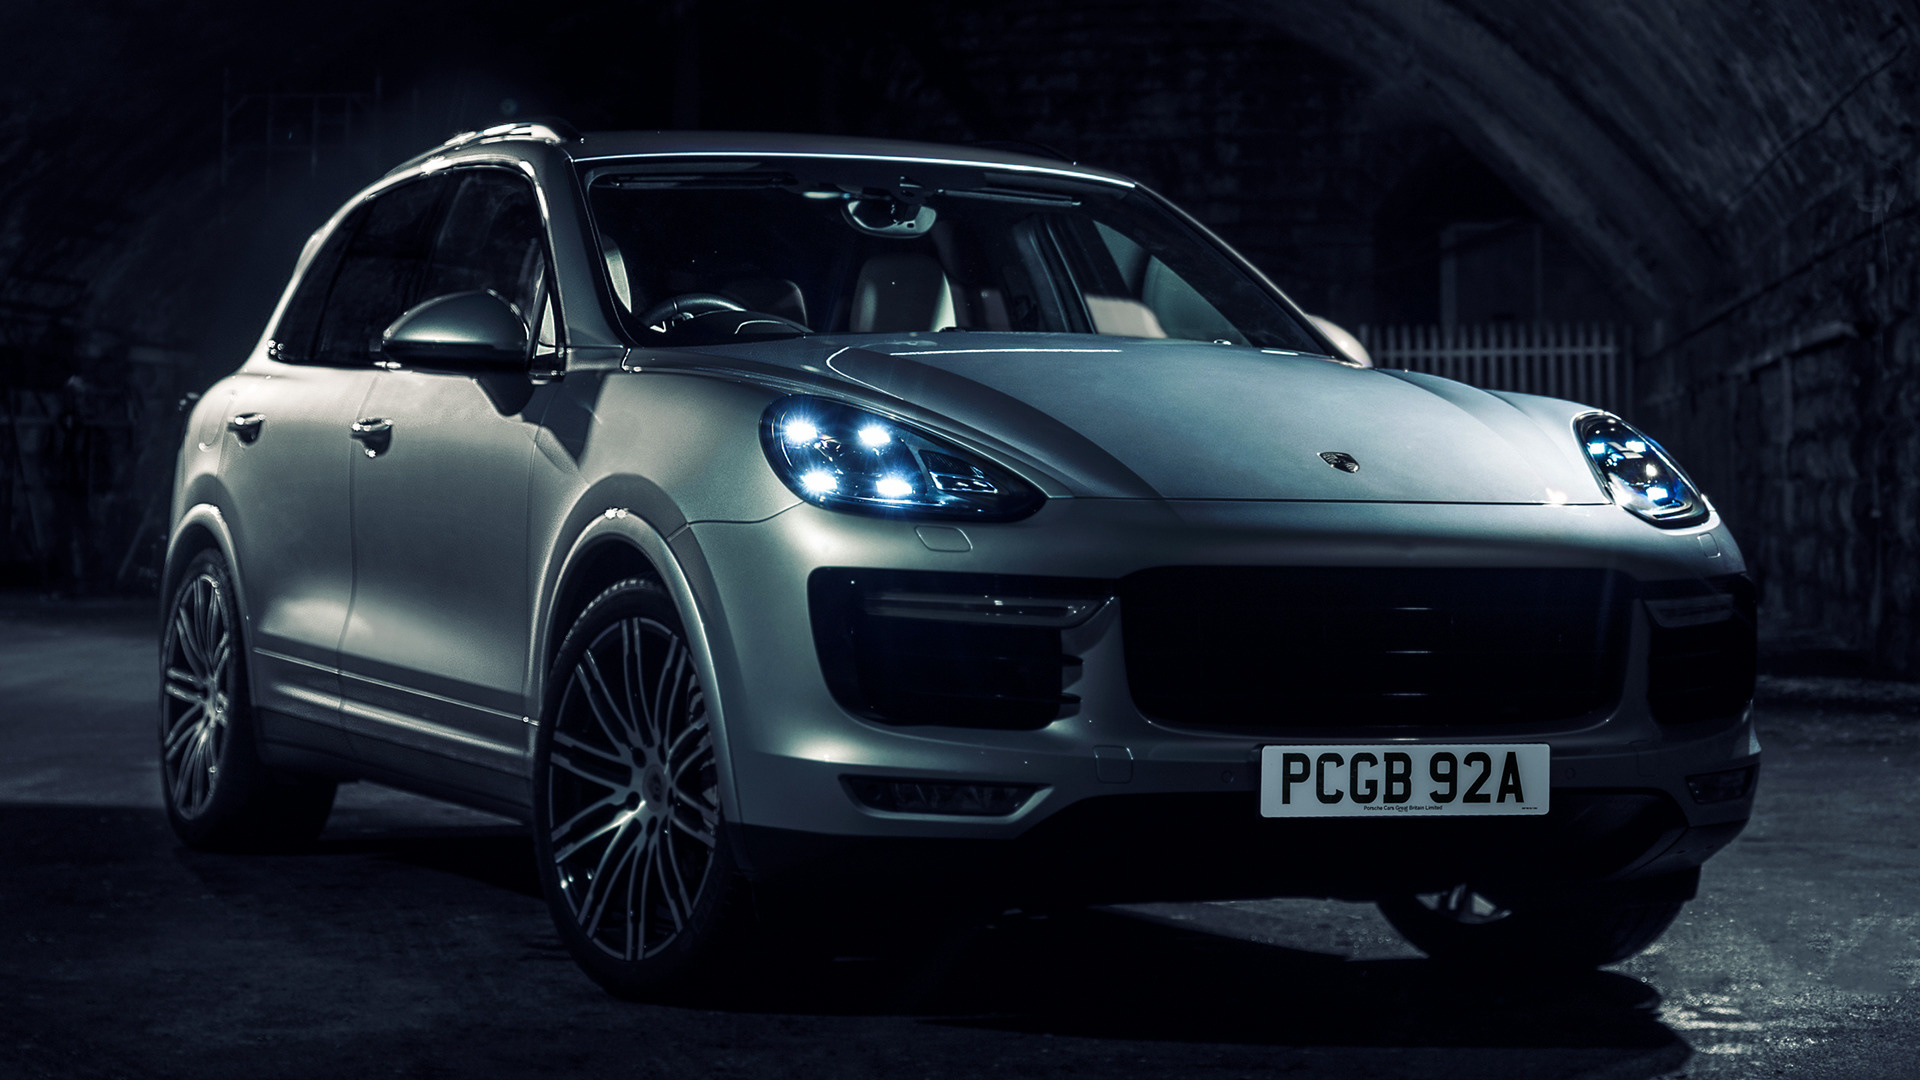 Porsche cayenne turbo s 2015 uk wallpapers and hd images car pixel hd 169 voltagebd Image collections